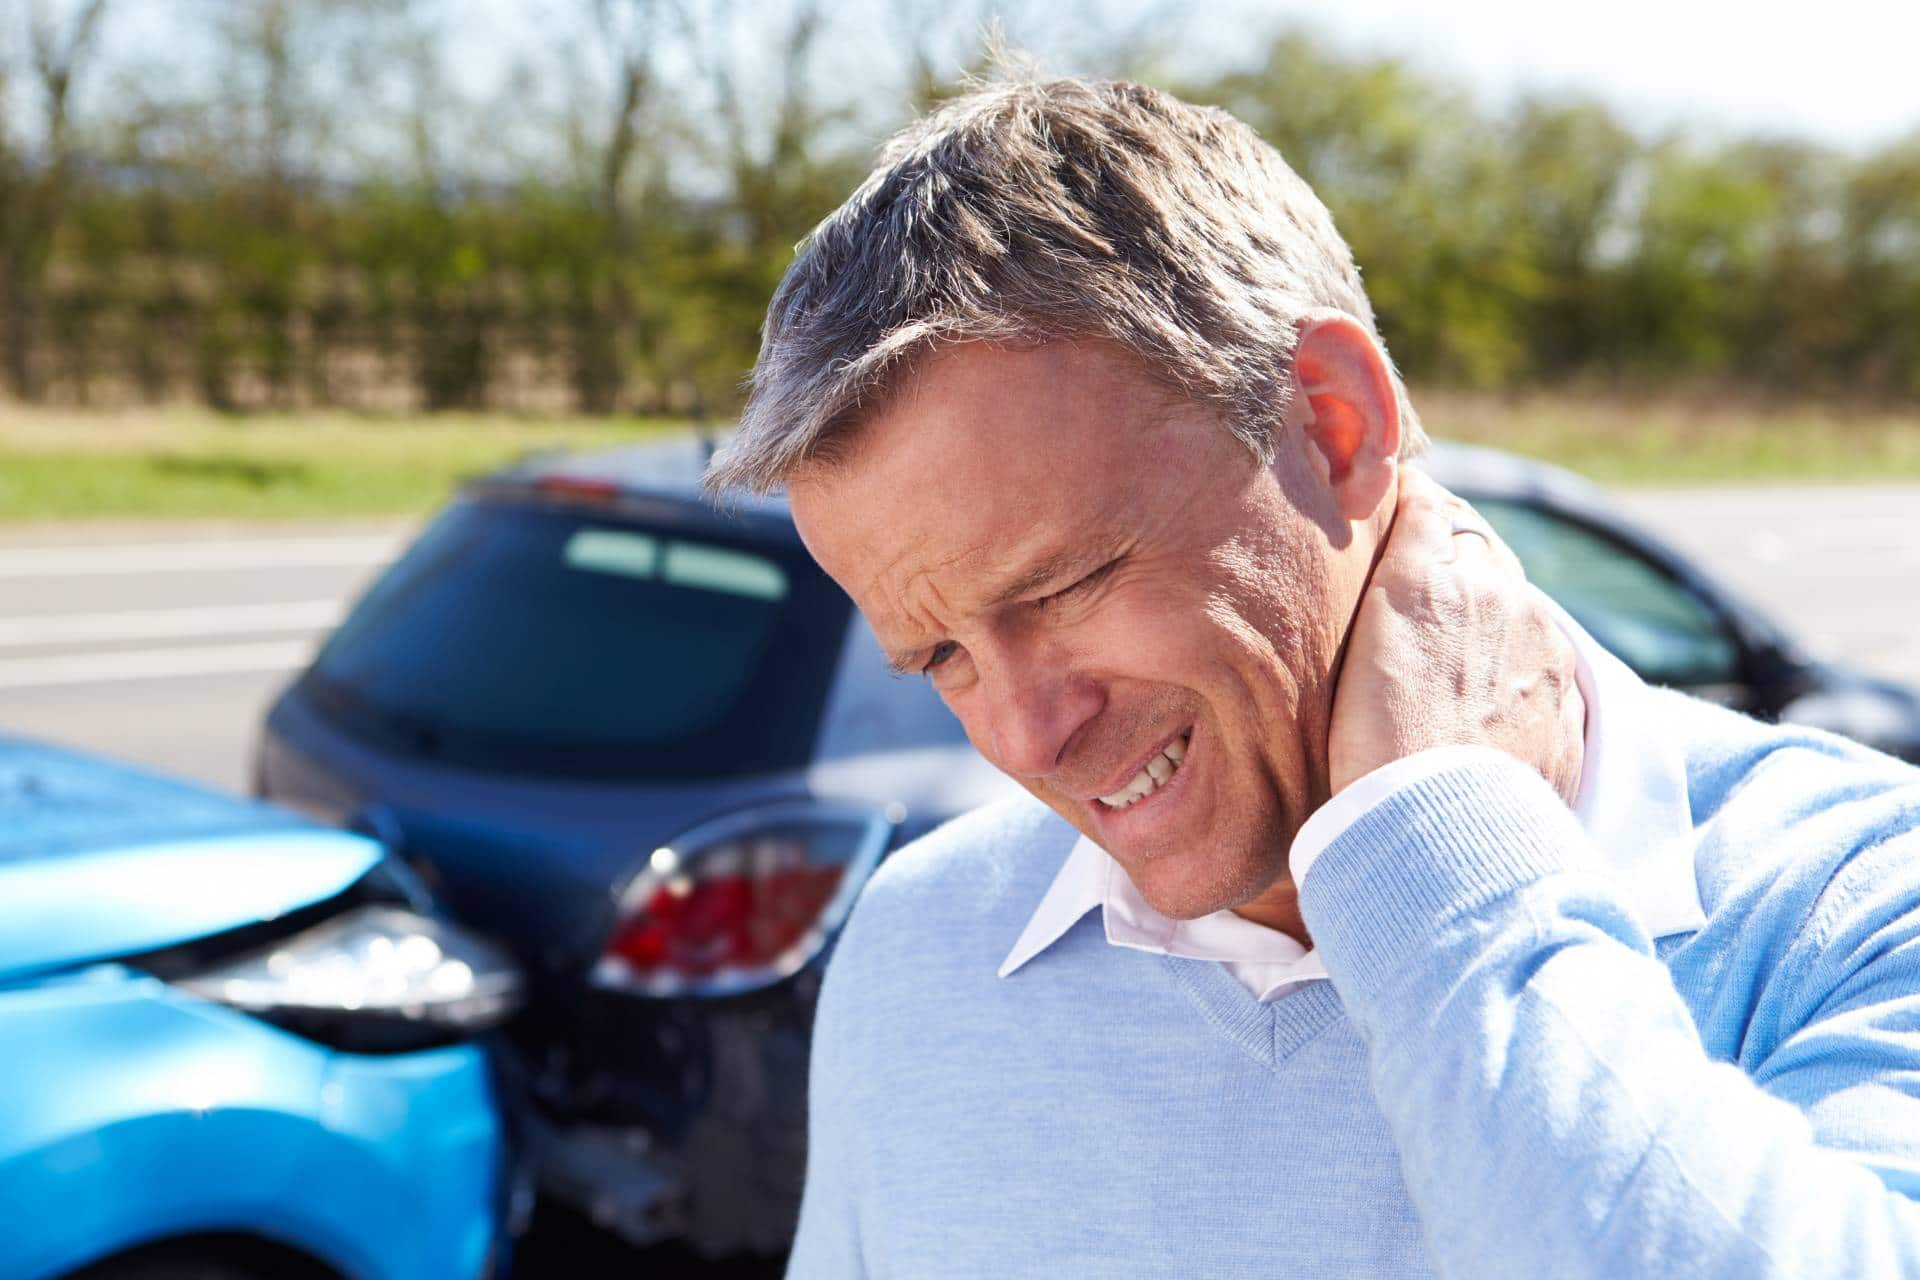 Hurt in an auto accident? Schedule a free consultation with our personal injury lawyers at the Angell Firm in Peachtree Park.